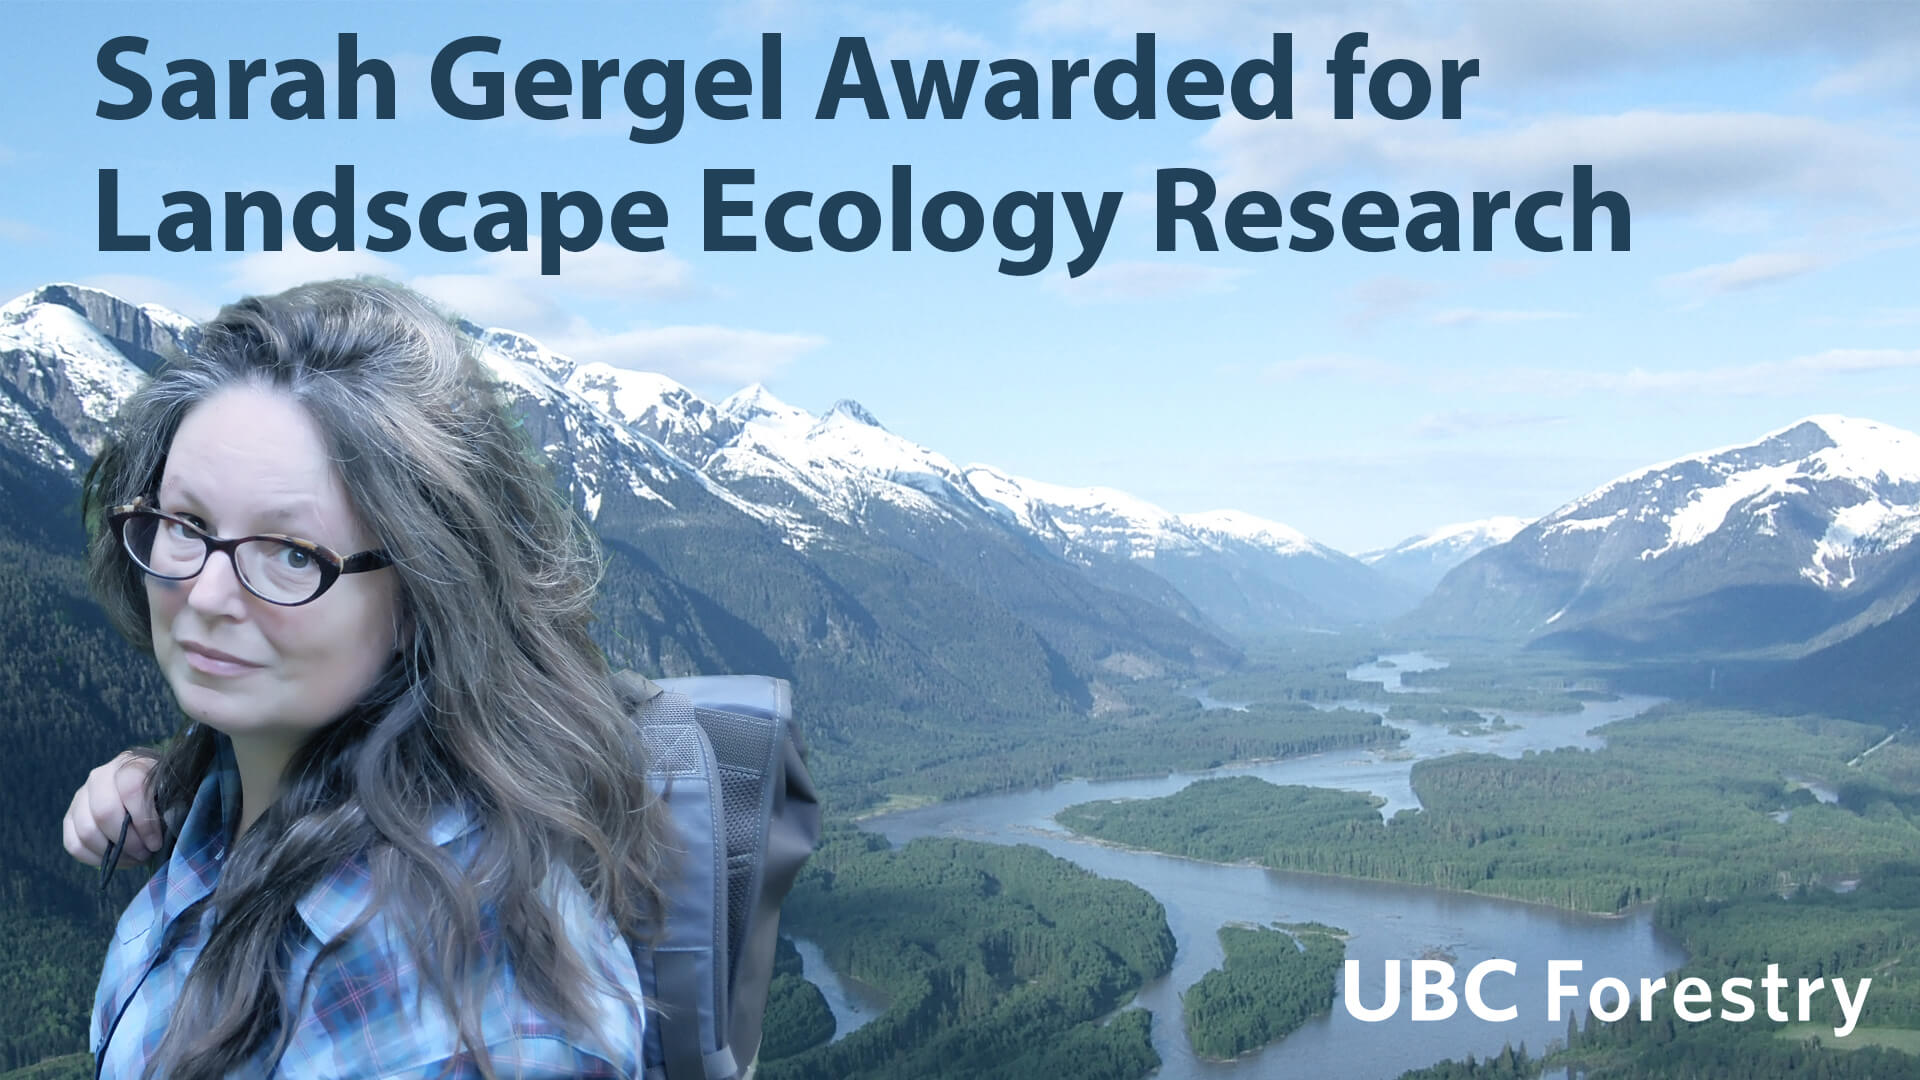 Sarah Gergel Awarded for Landscape Ecology Research